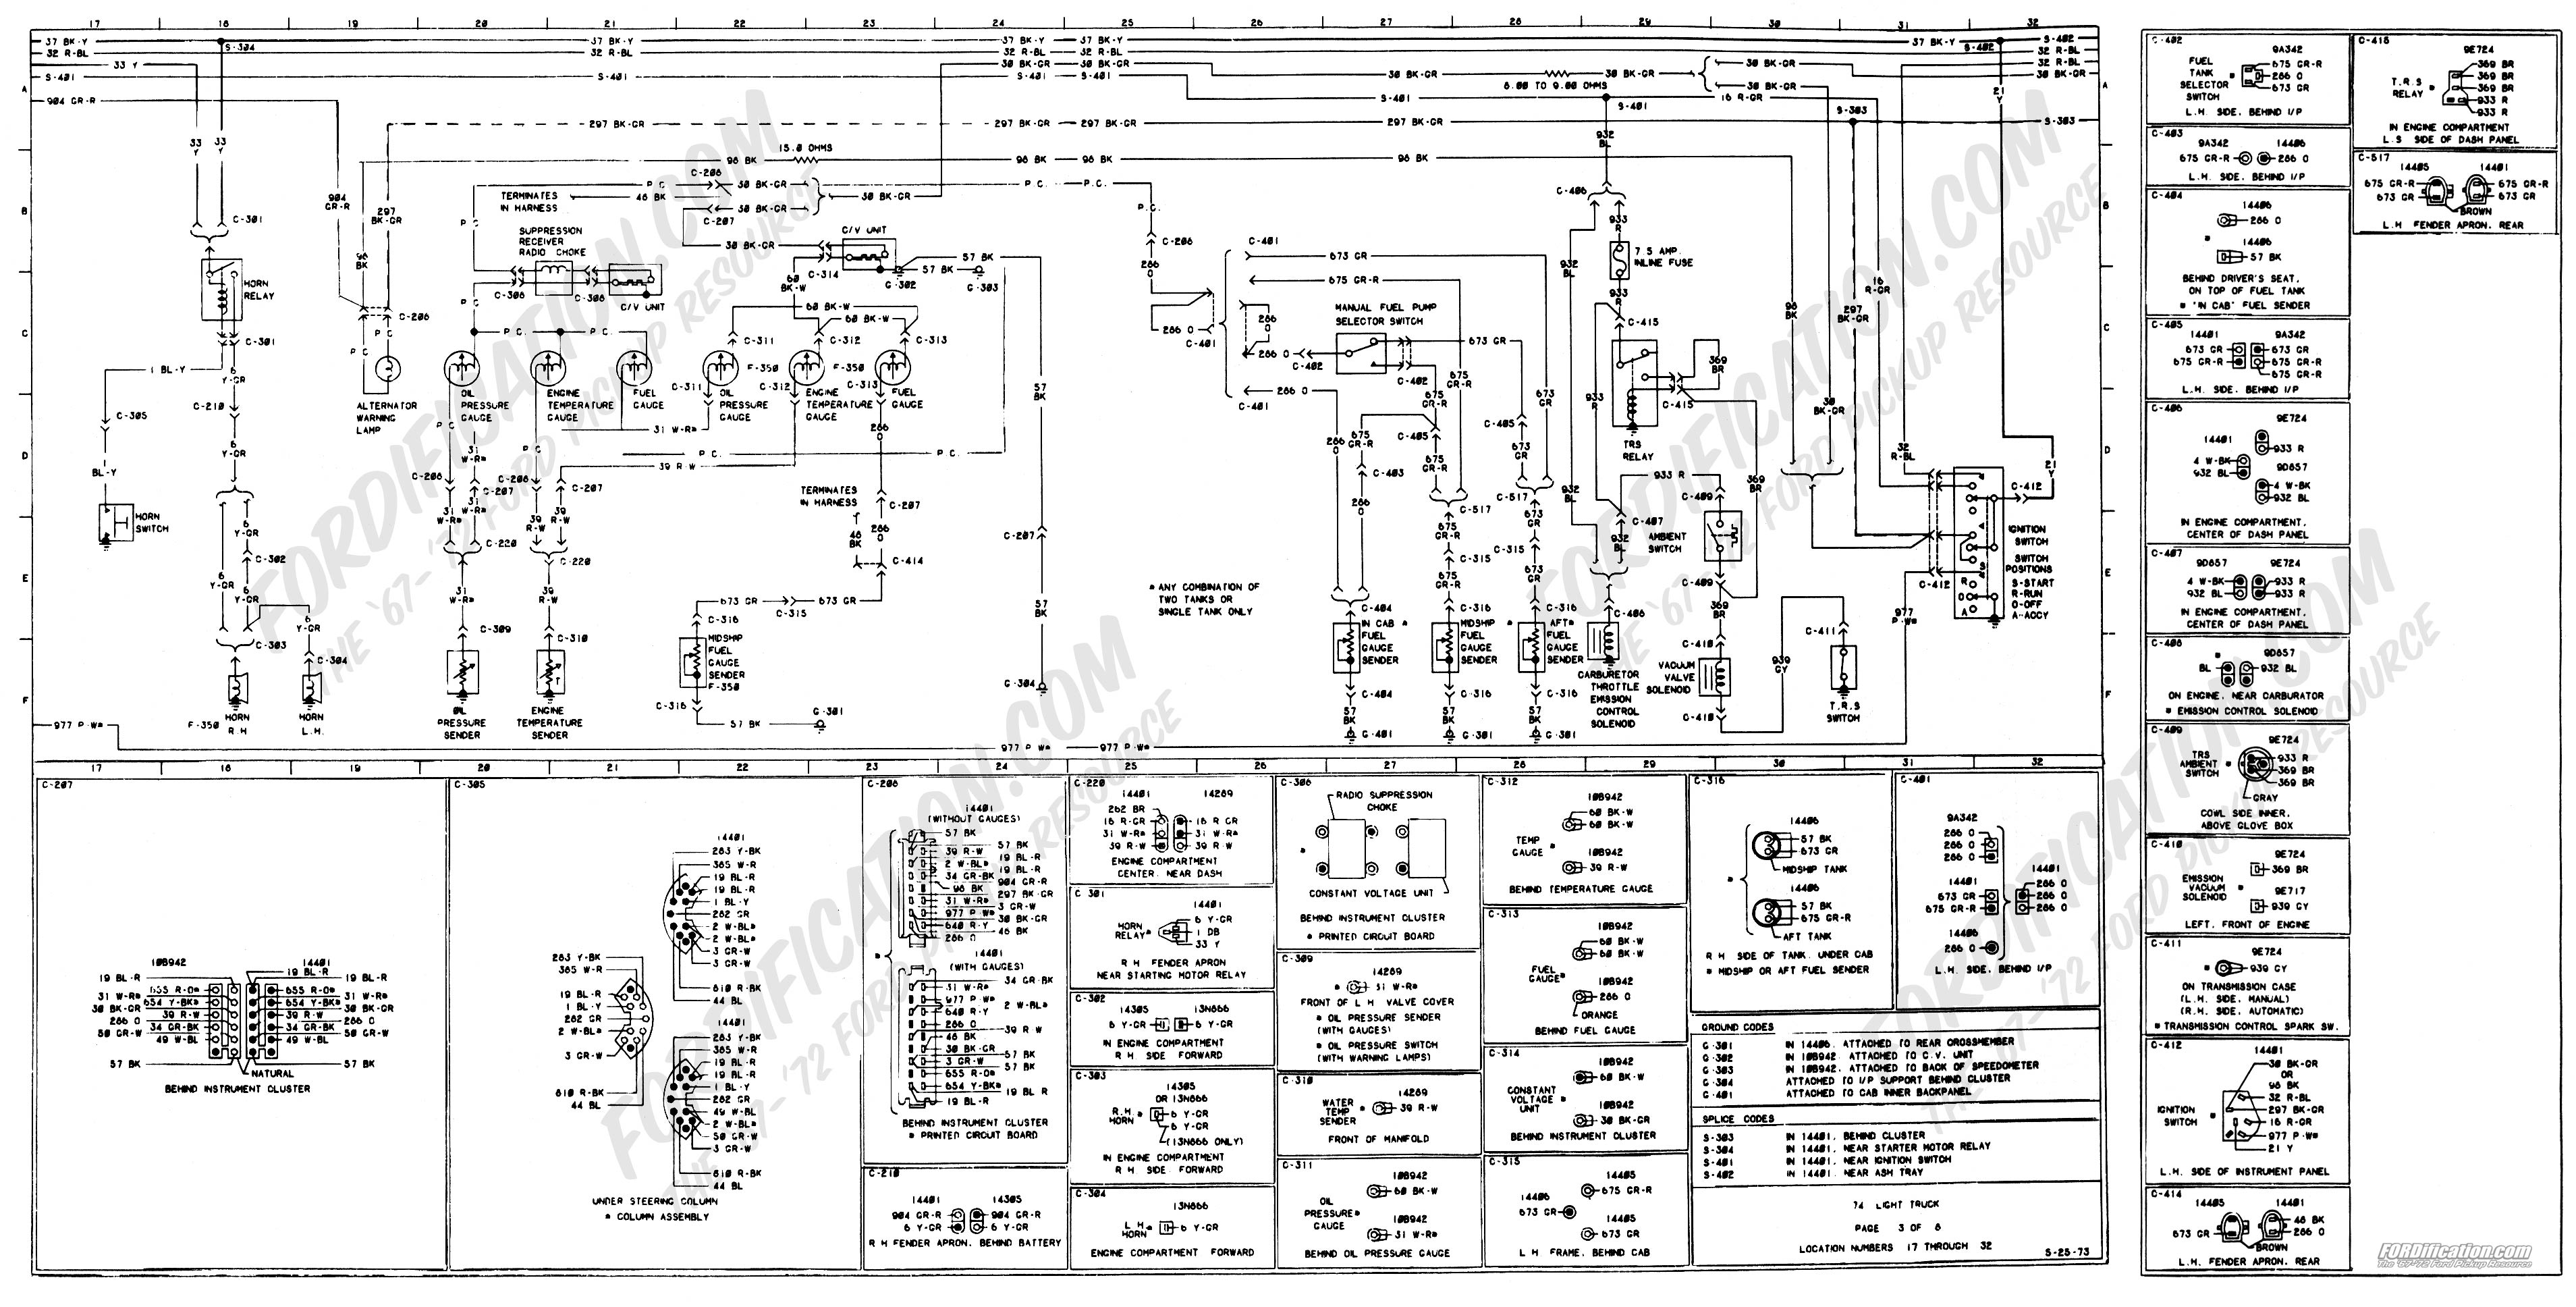 wiring_74master_3of8 1973 ford f250 wiring diagram ford f 150 starter wiring diagram 1996 ford bronco wiring diagram at nearapp.co